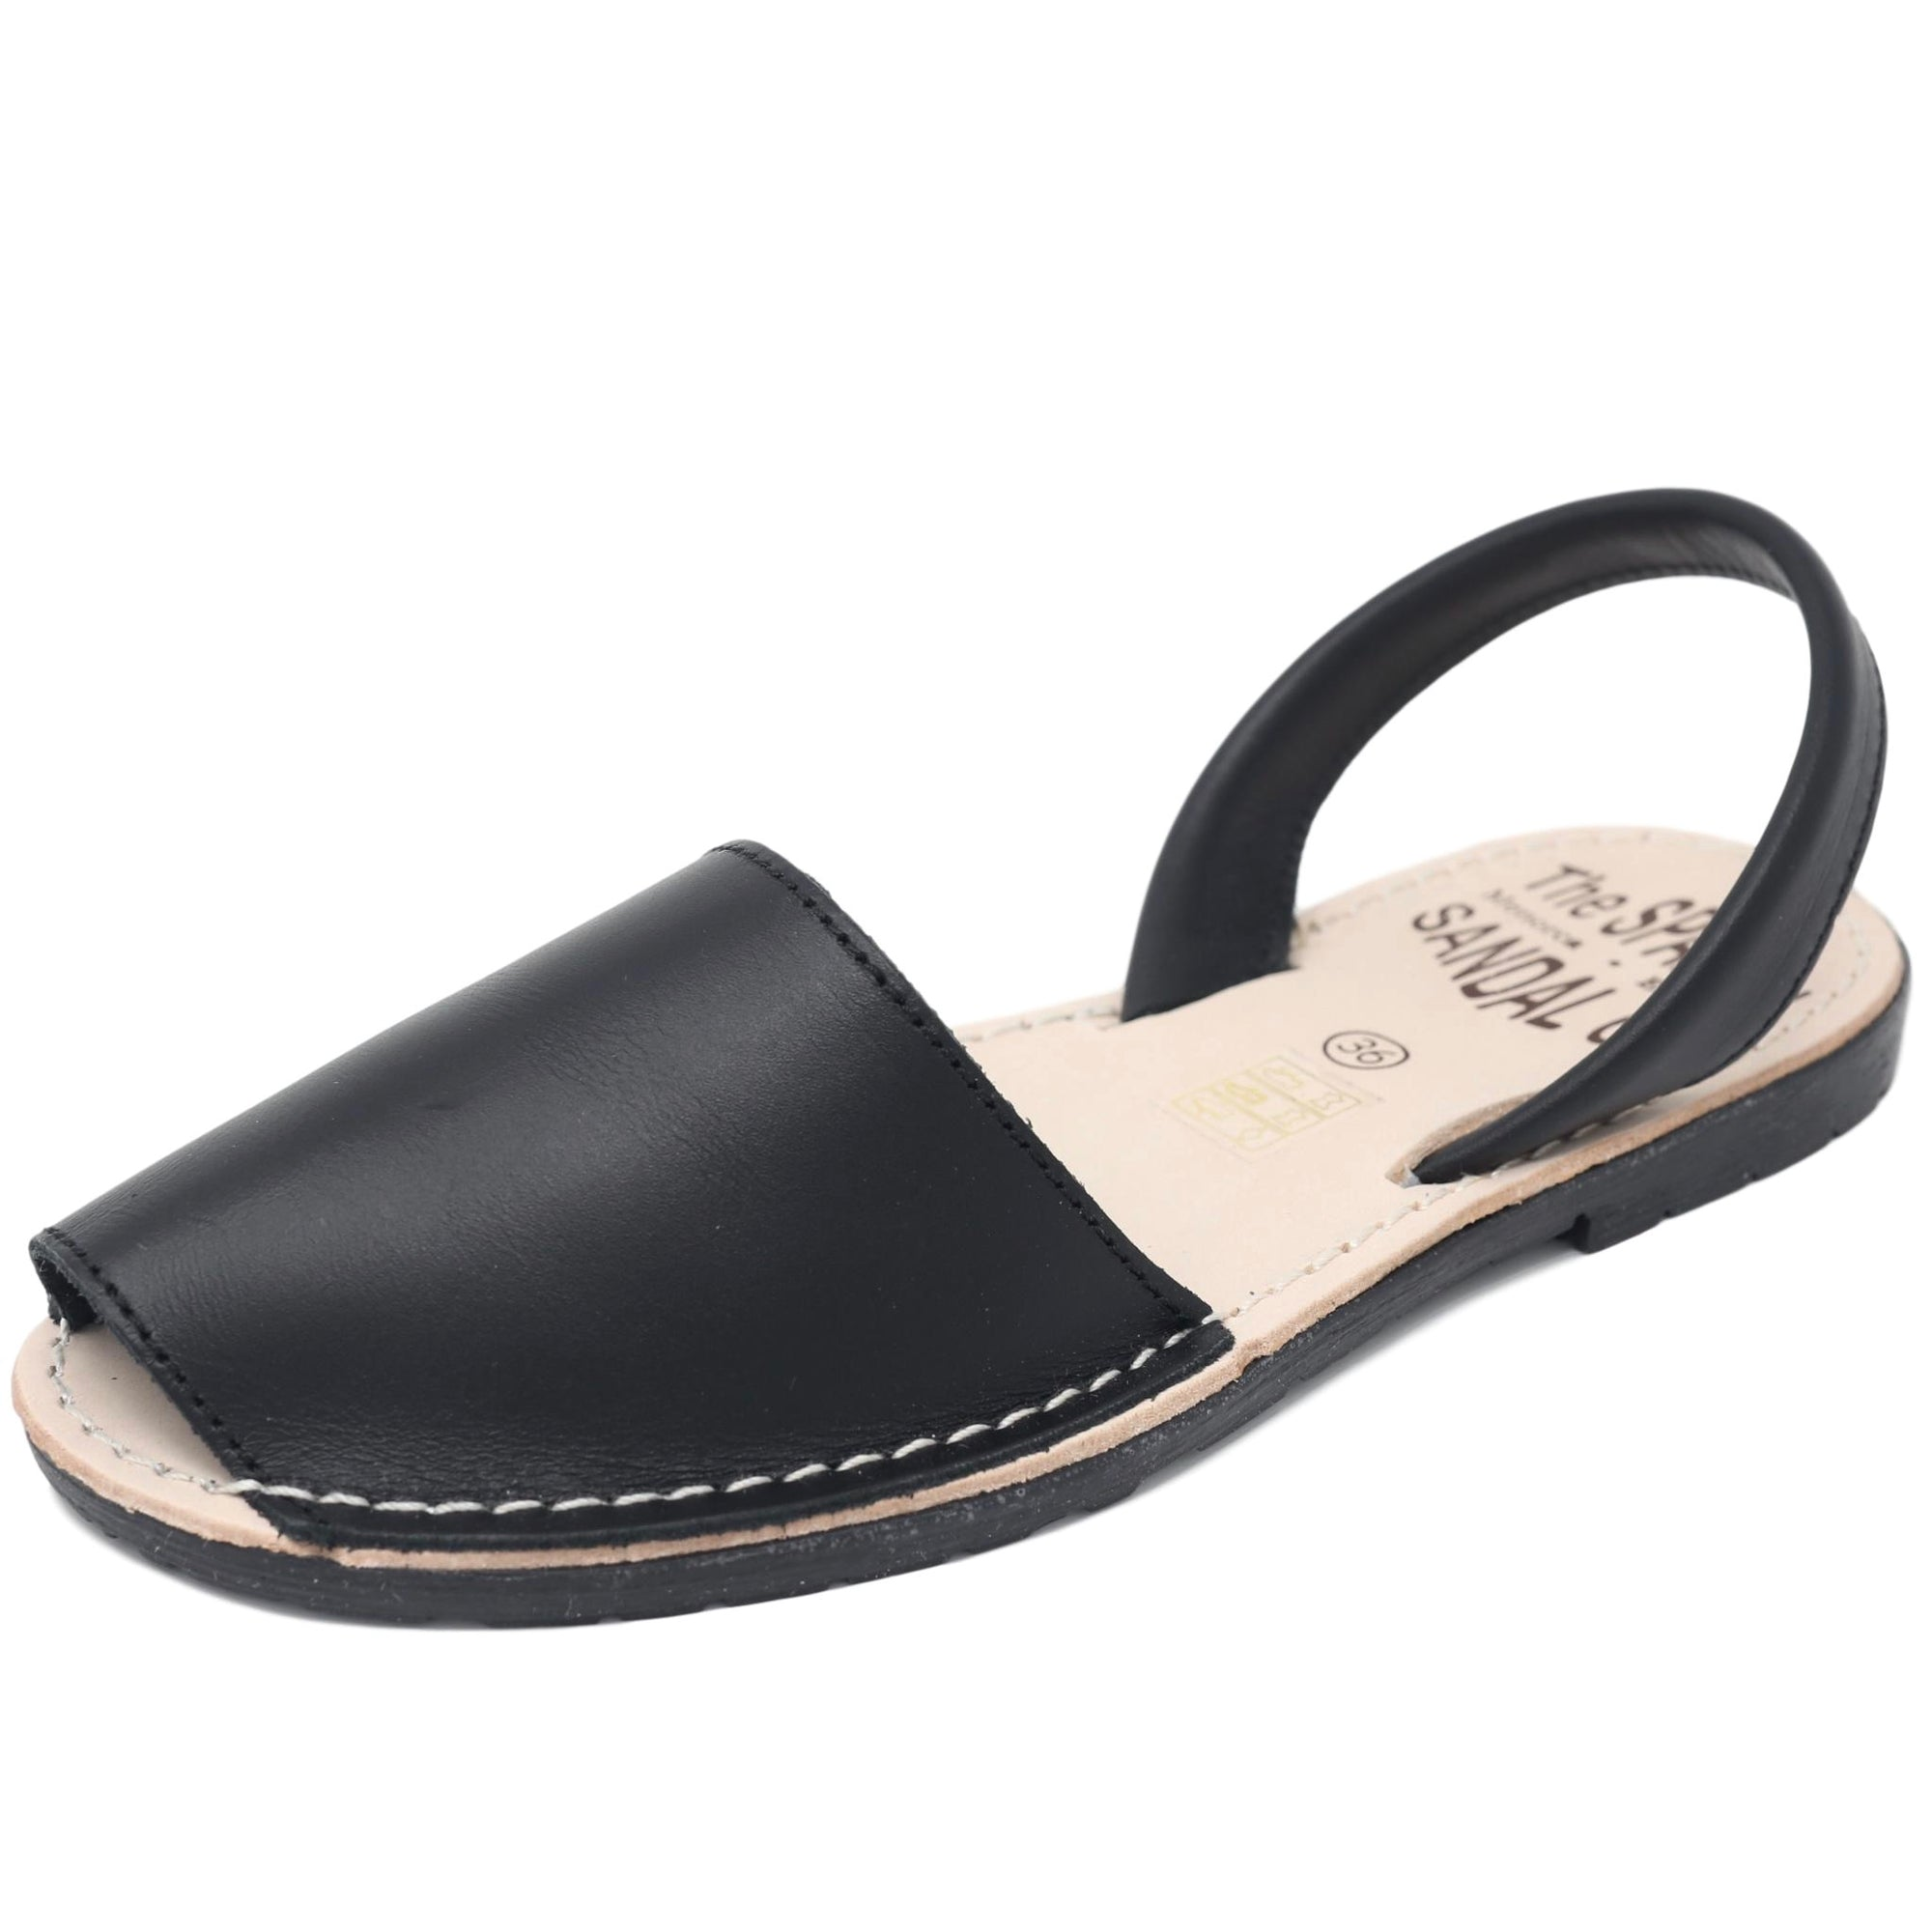 diagonal view of black leather Spanish Sandals